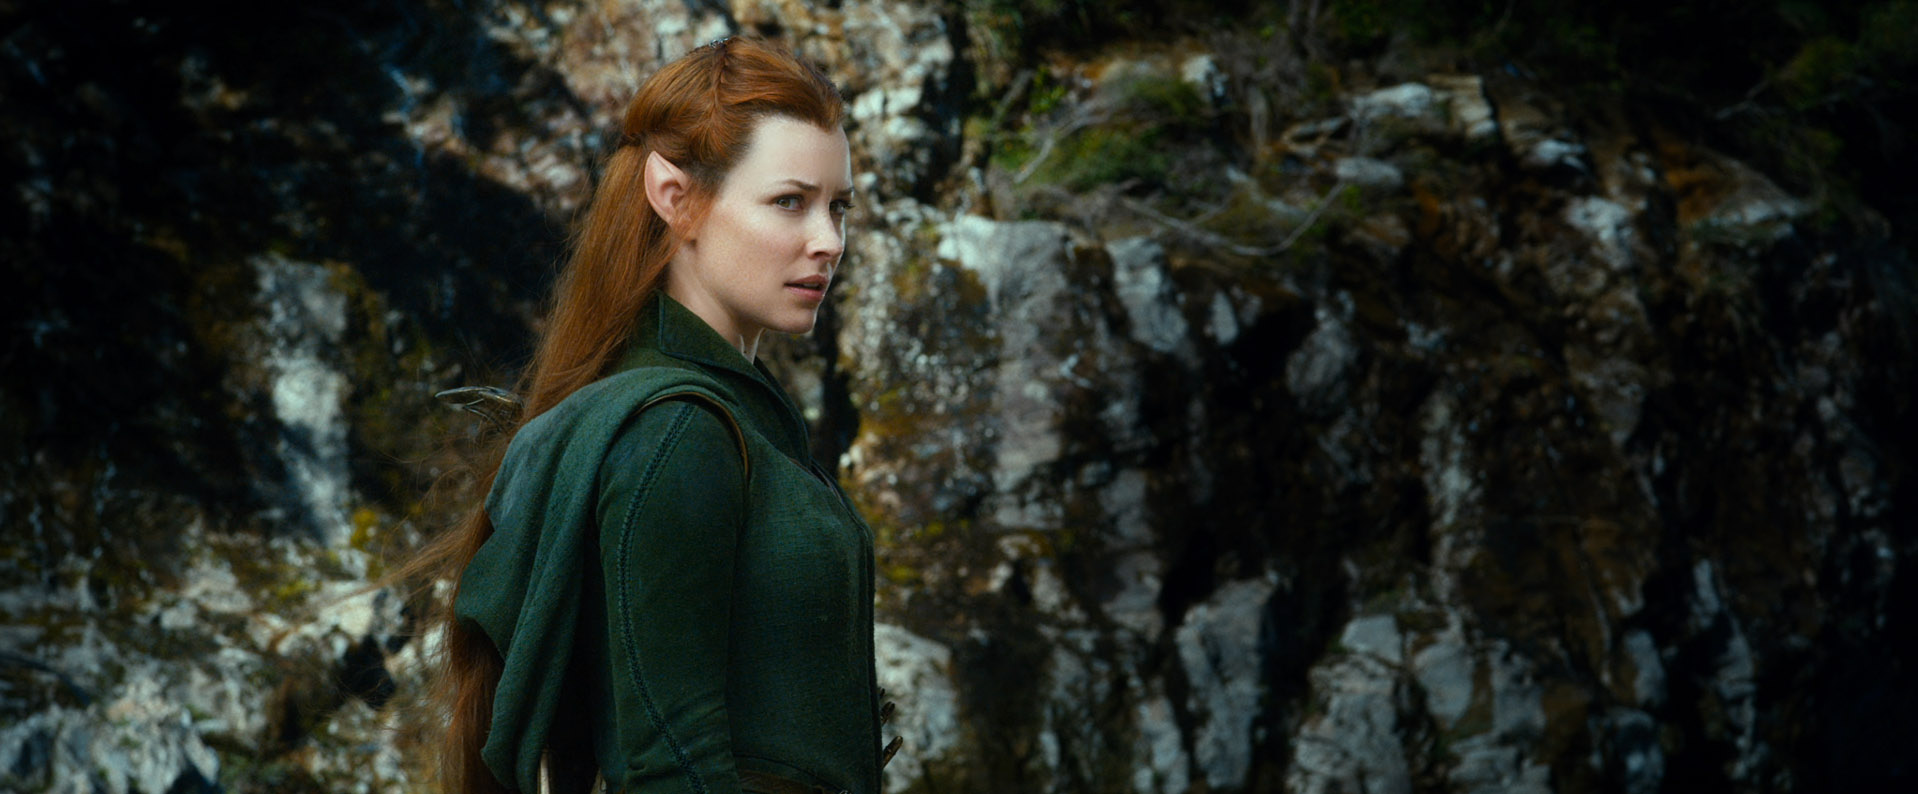 hobbit desolation smaug tauriel1 The Hobbit: The Desolation Of Smaug Gallery